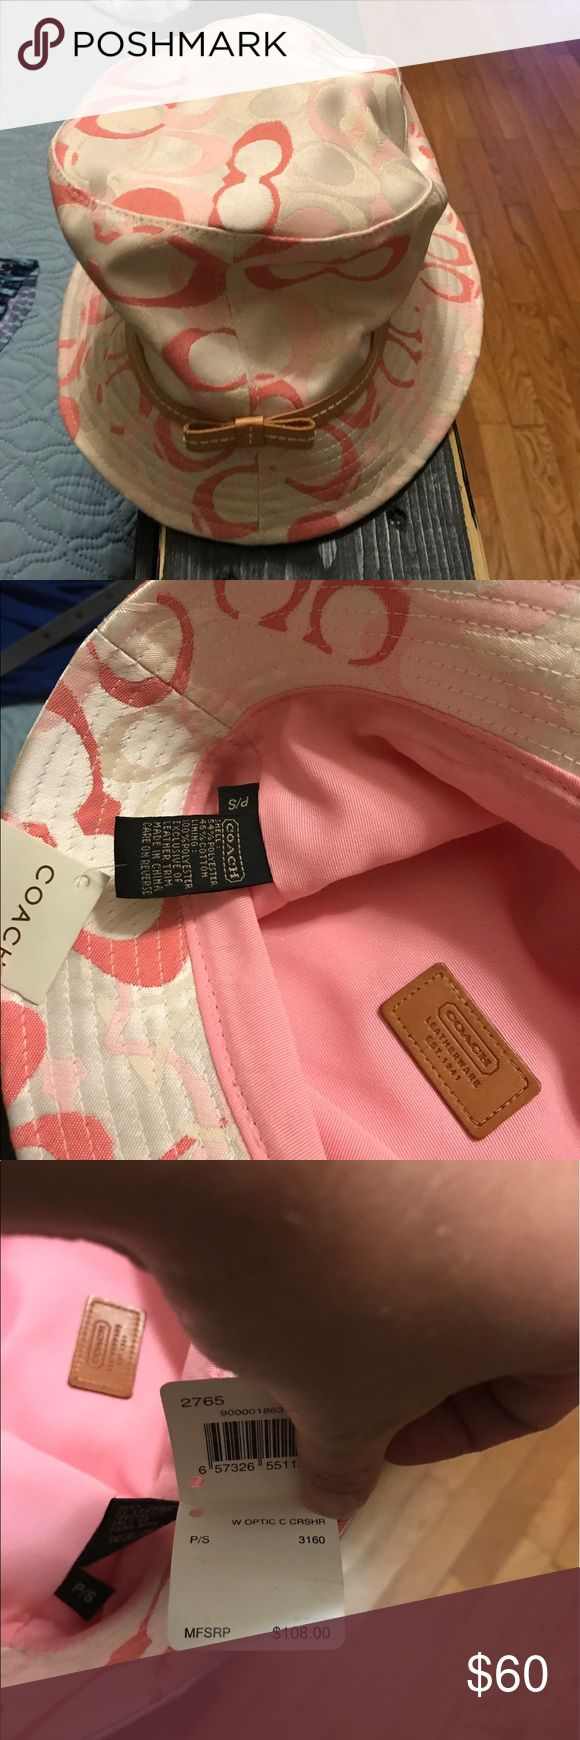 Women's Coach Hat *NWT* This hat is brand new with tag still attached. Coach Accessories Hats